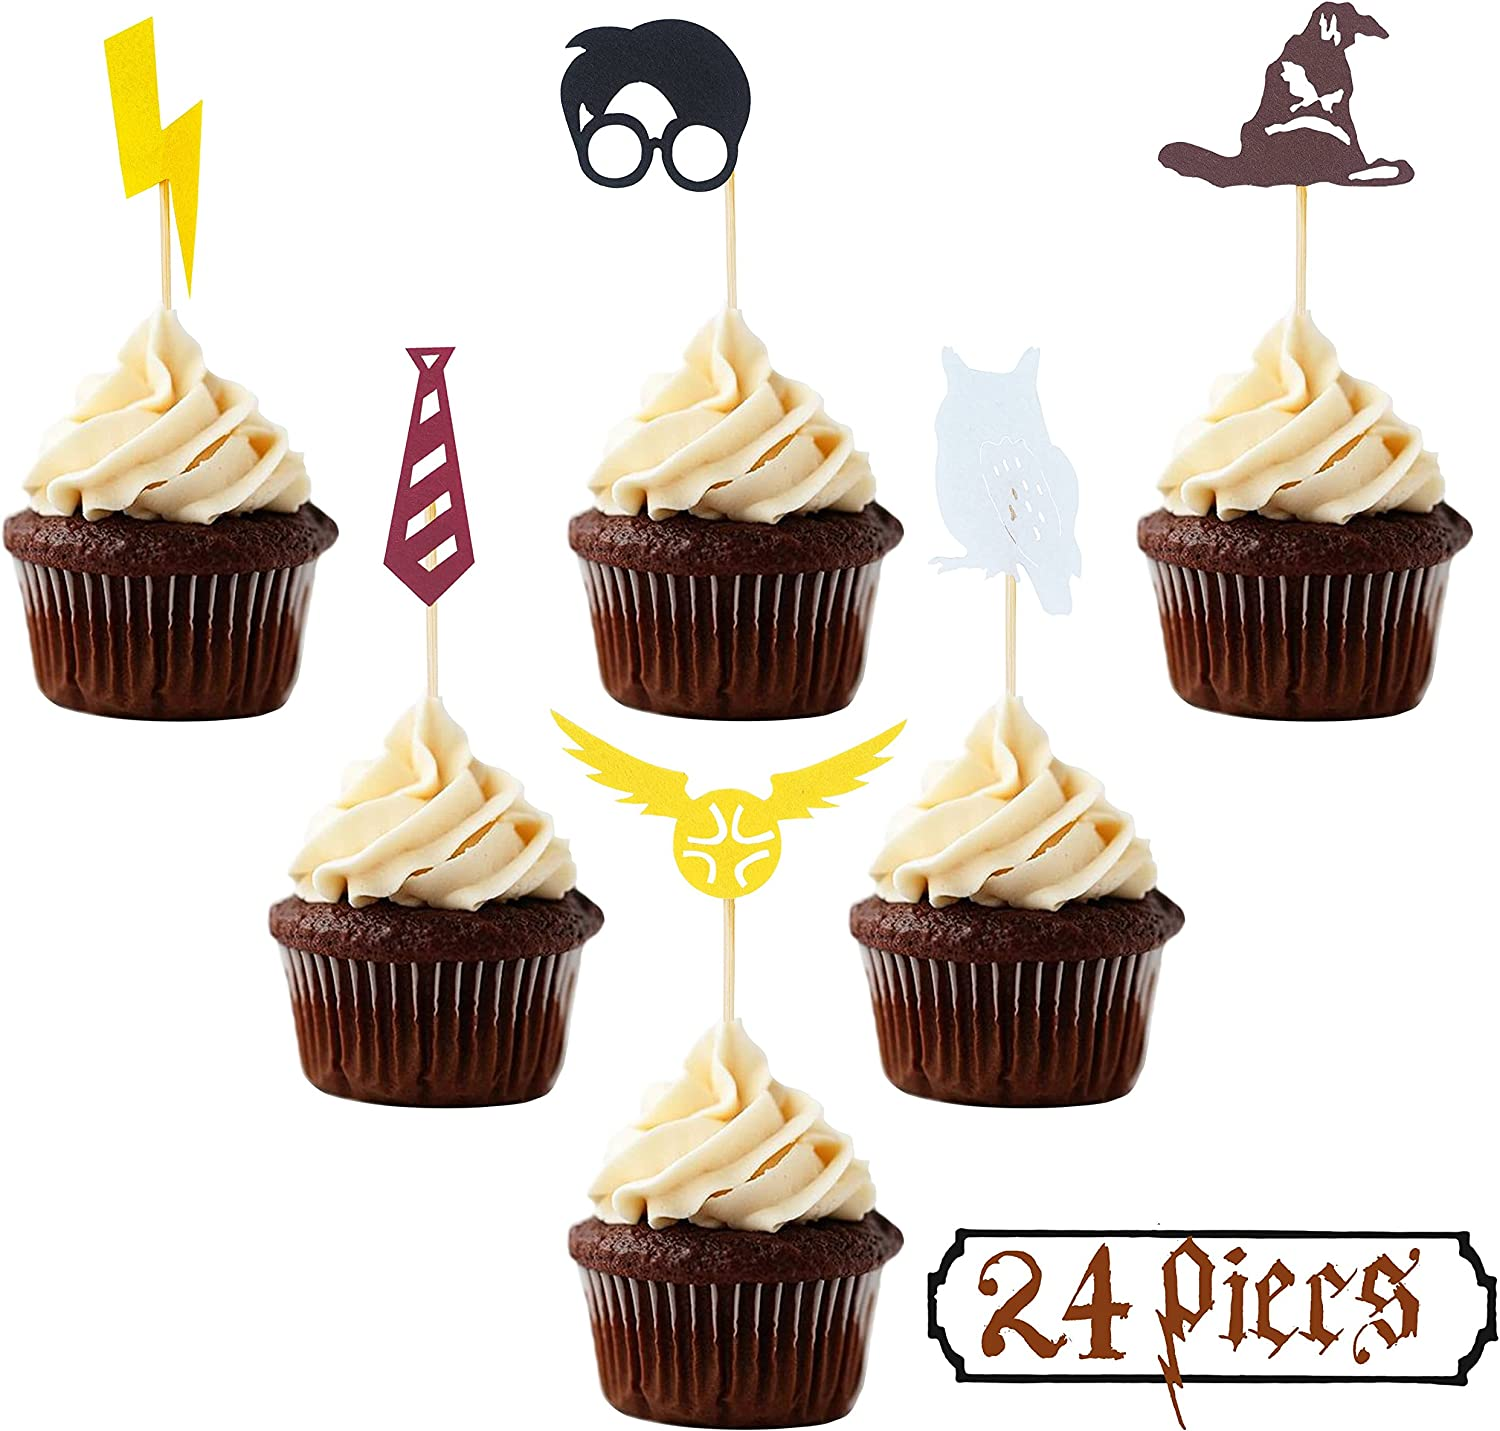 Wizard Cupcake Toppers (Set of 24) Wizard School Birthday Party Decorations Supplies Party Decor